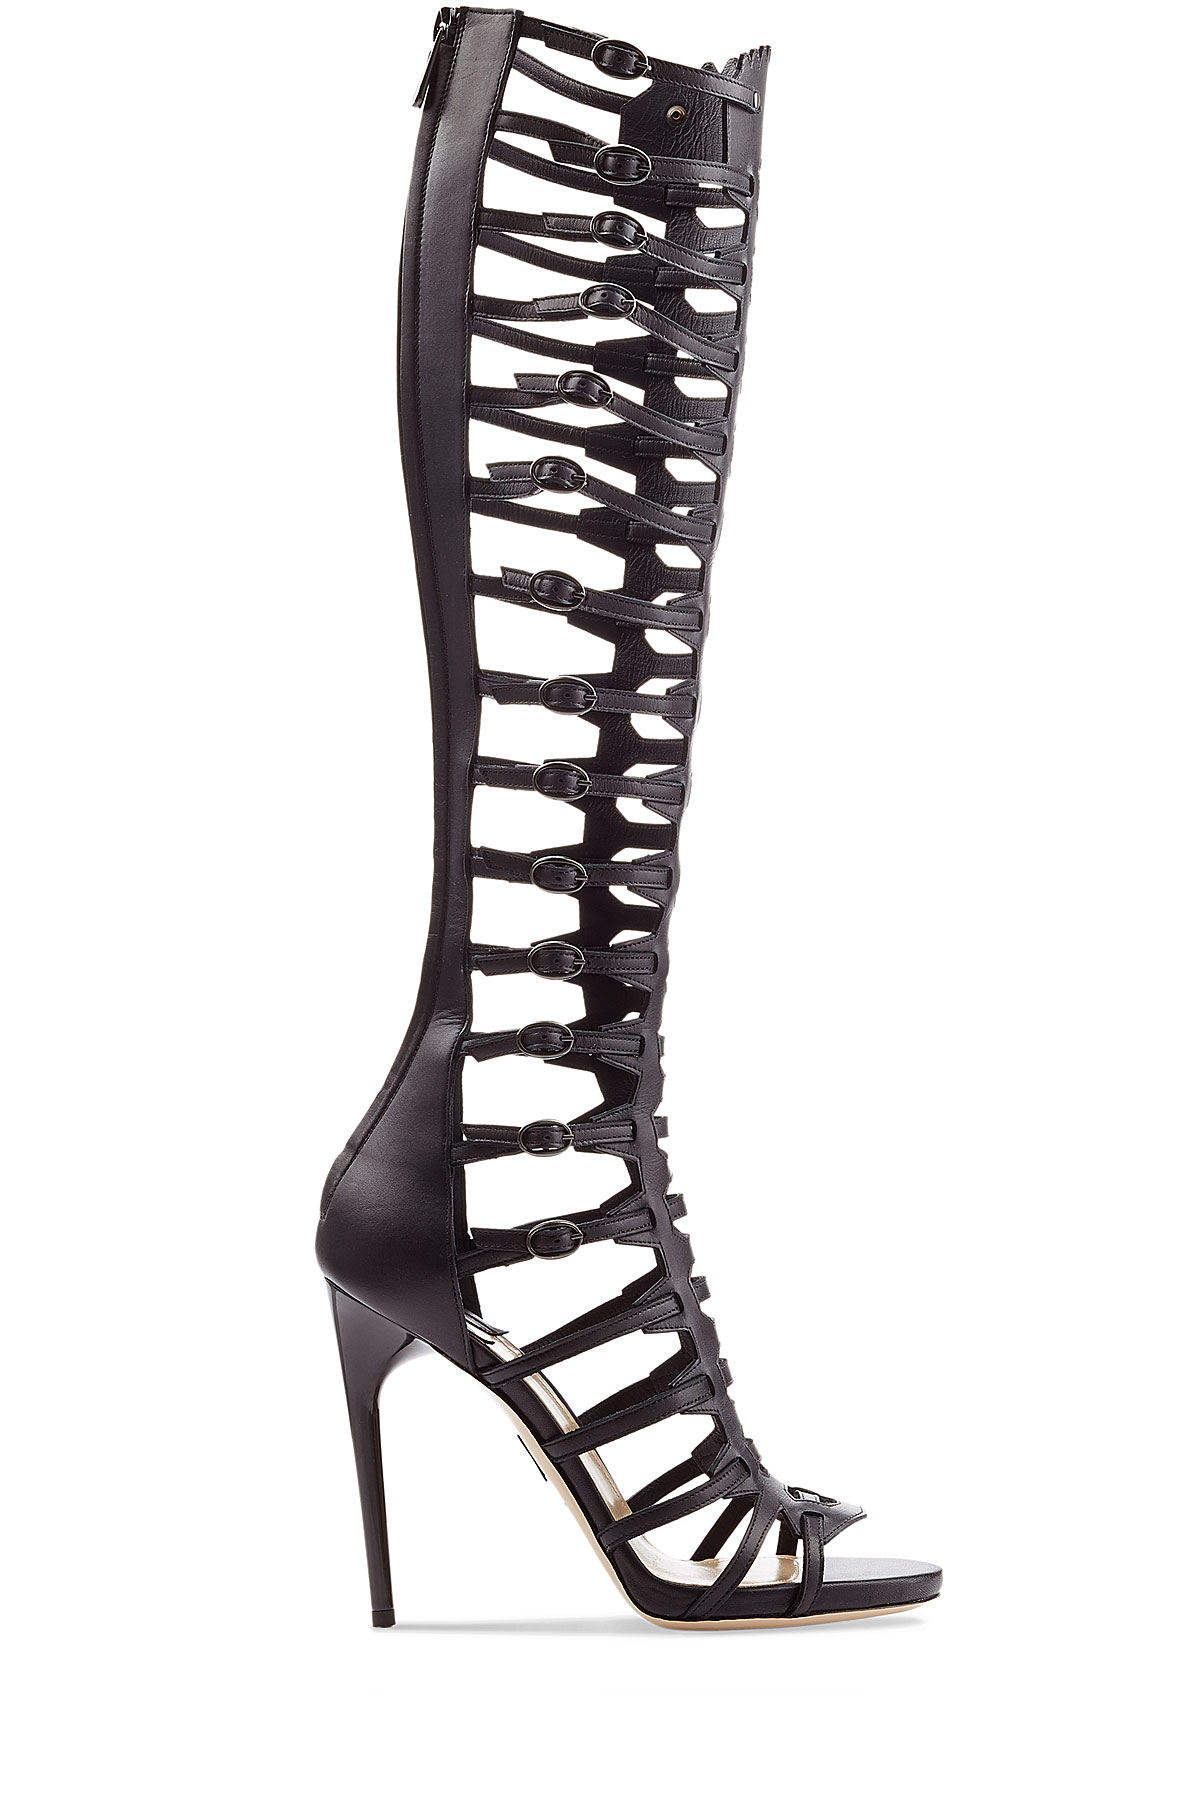 Paul Andrew Knee-High Gladiator Sandals cheap sale 2014 new shovB8l